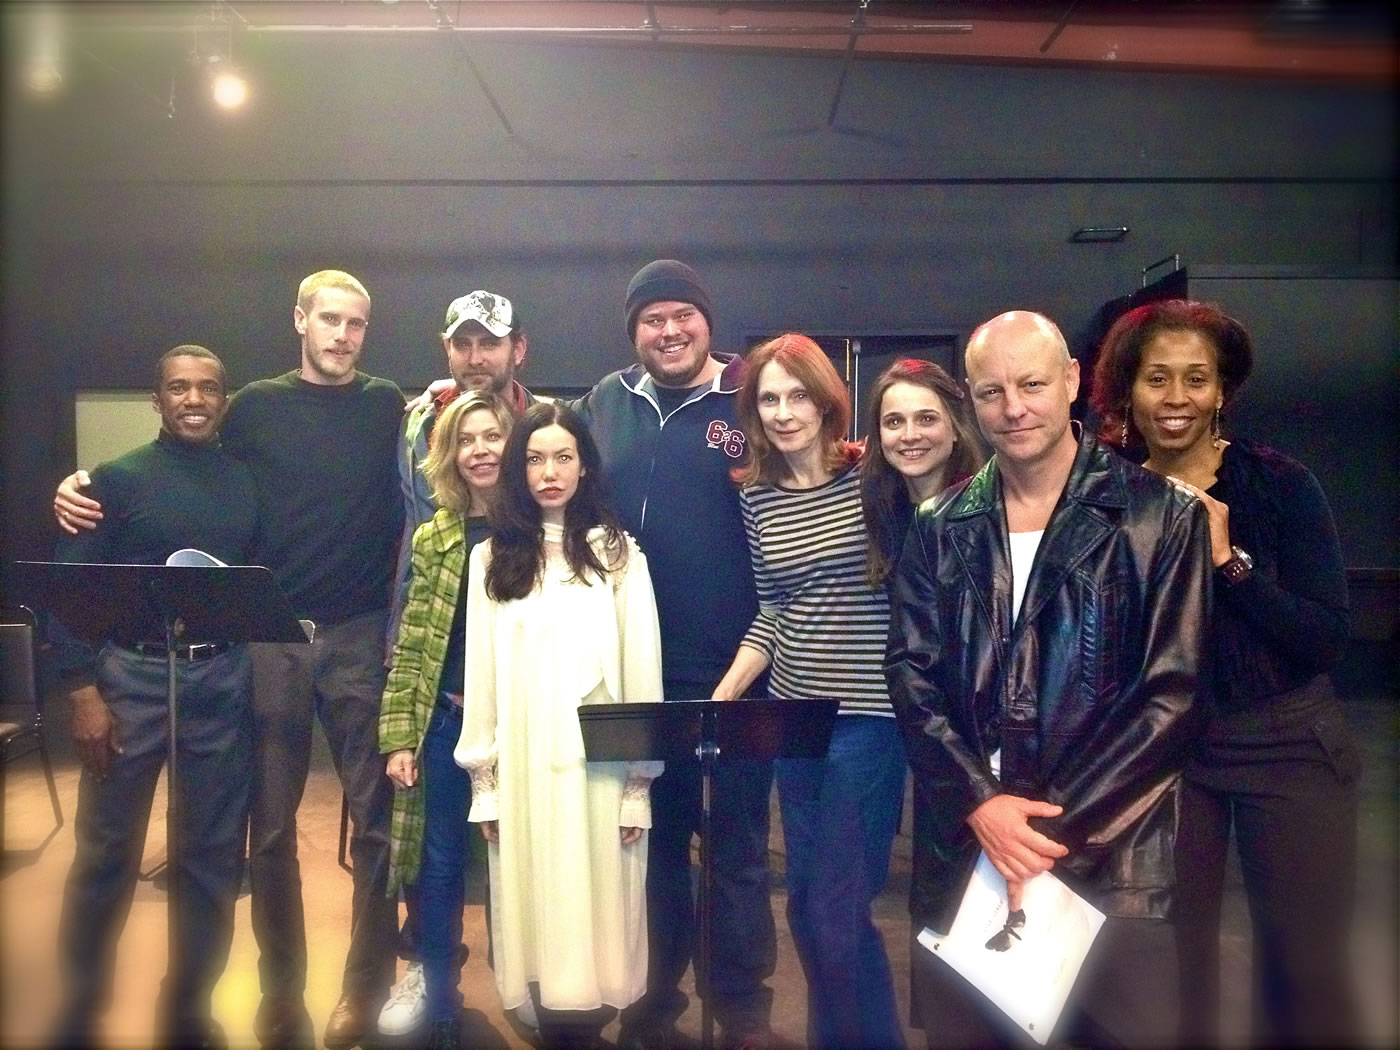 Live Girls cast with writer Tim Cummings and director Gates McFadden